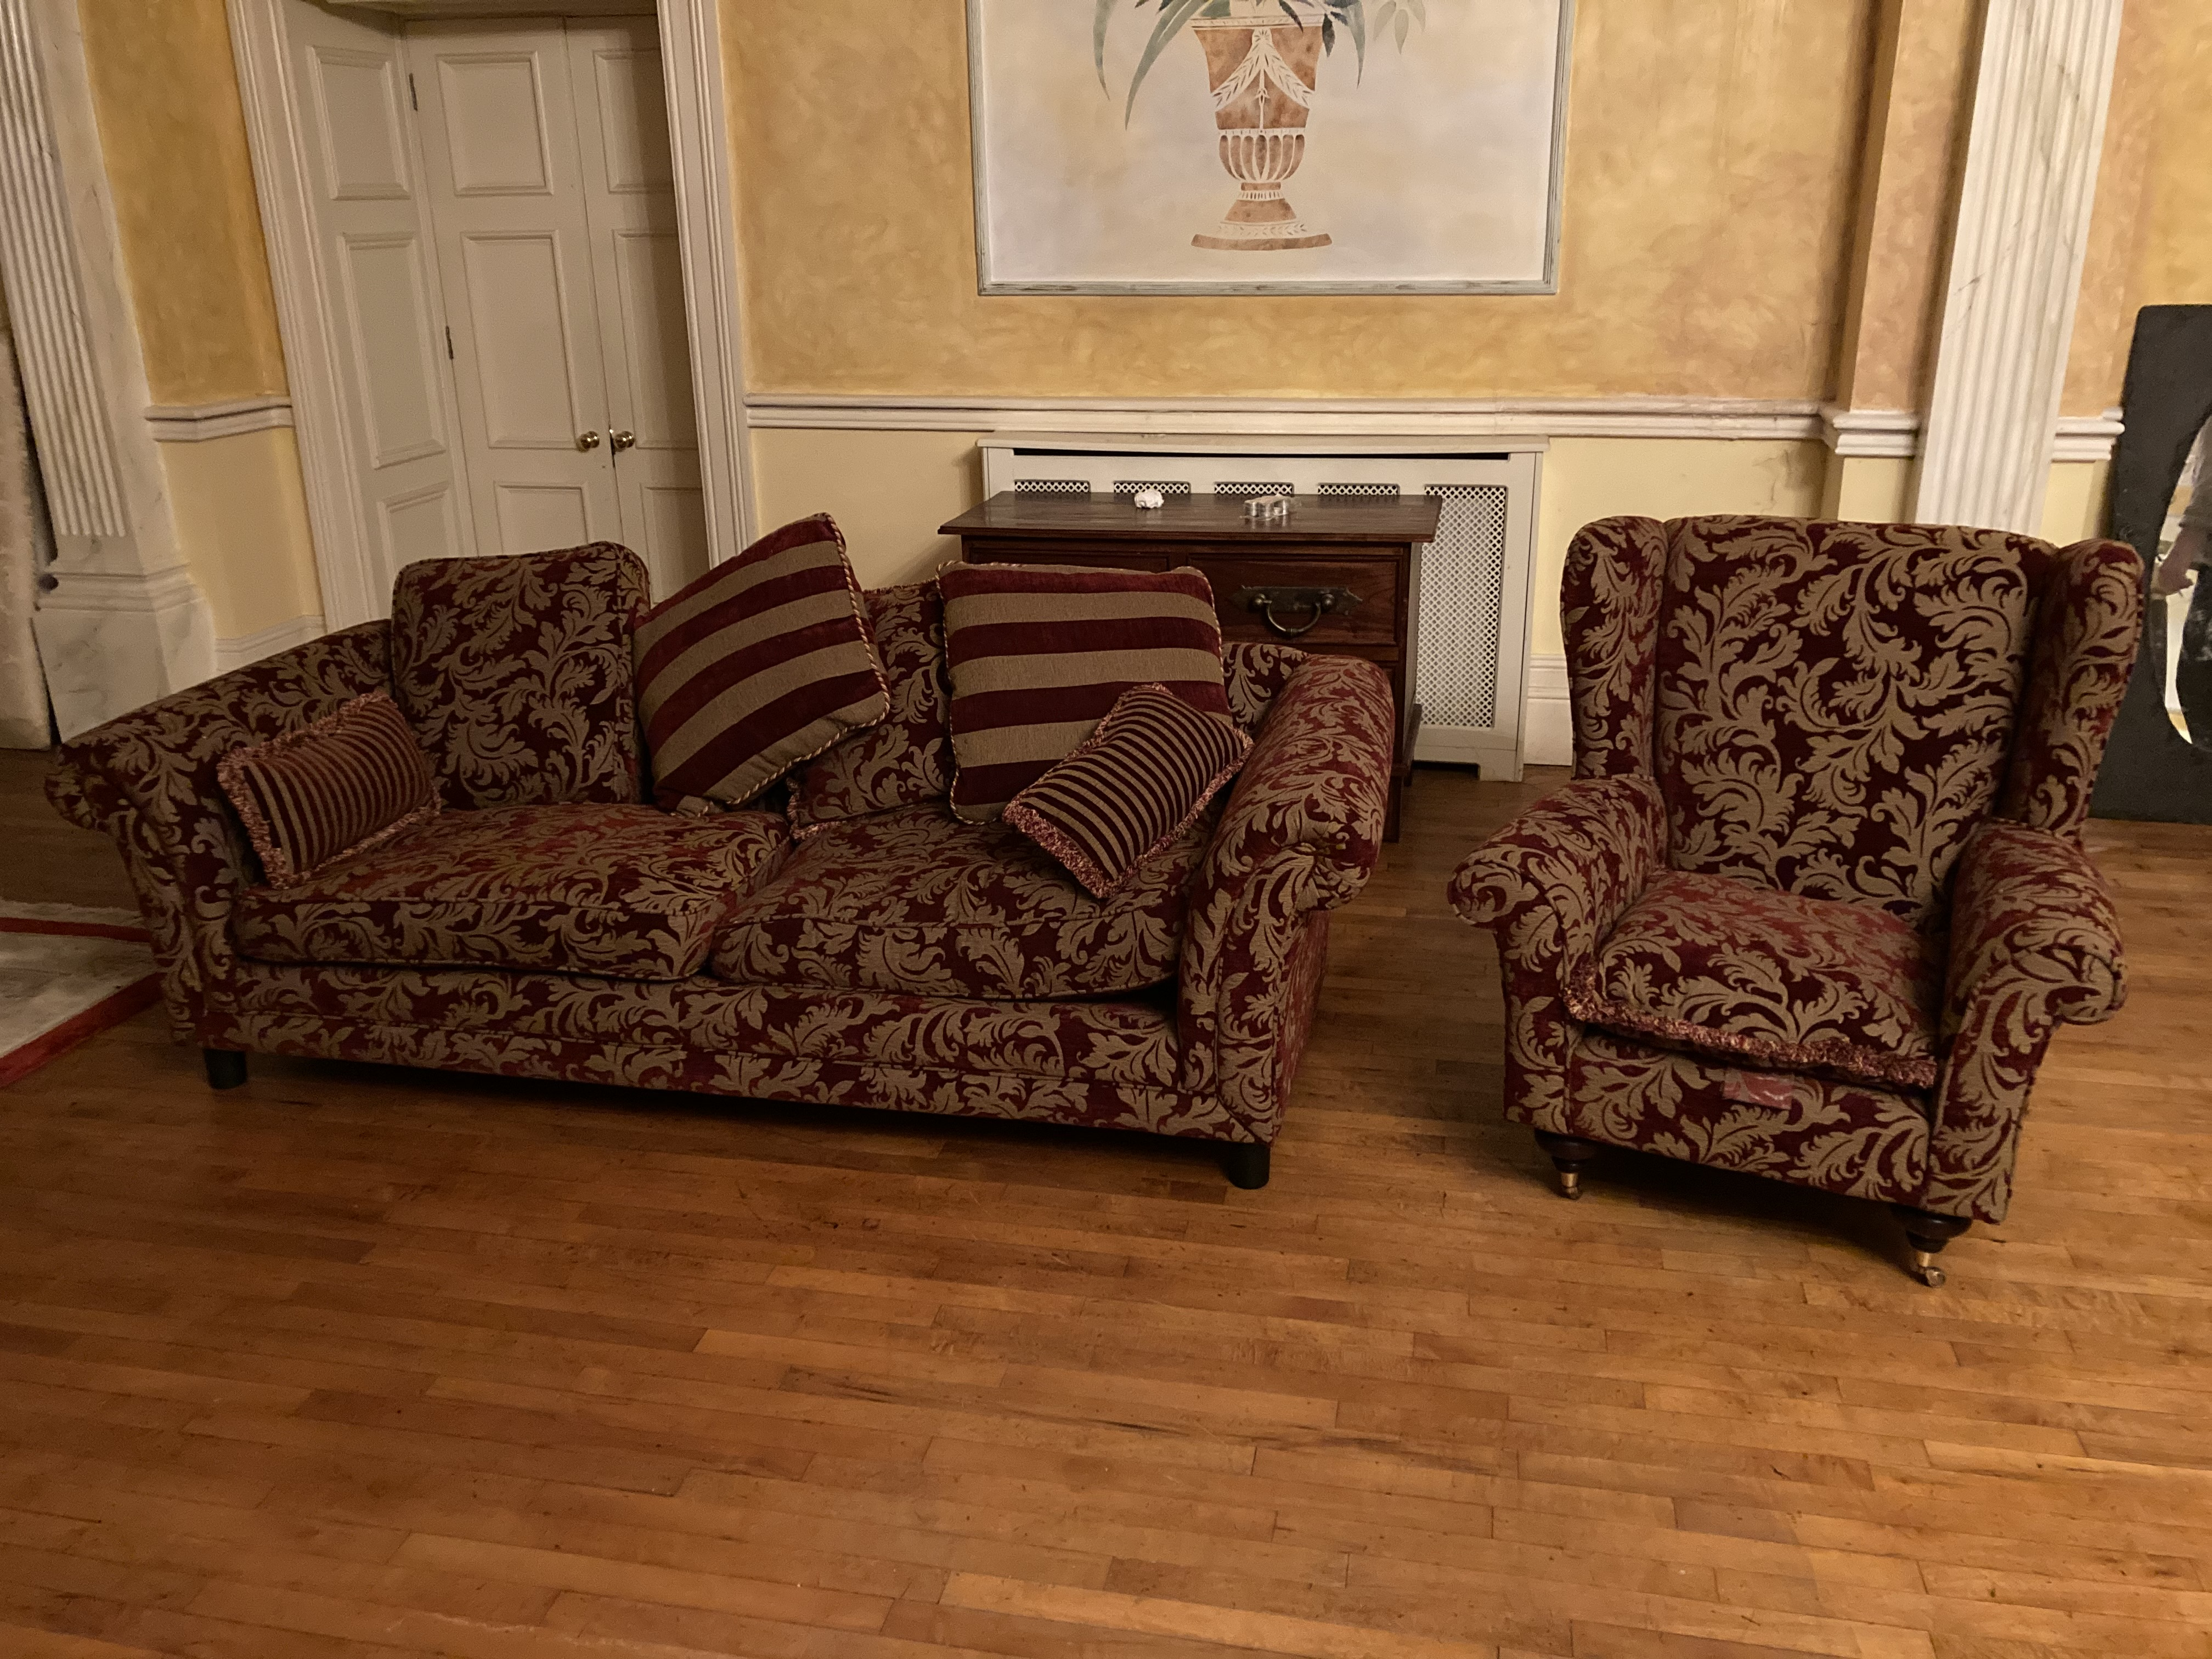 A very good modern Suite of Seat Furniture, comprising a four seater double cushion Settee with